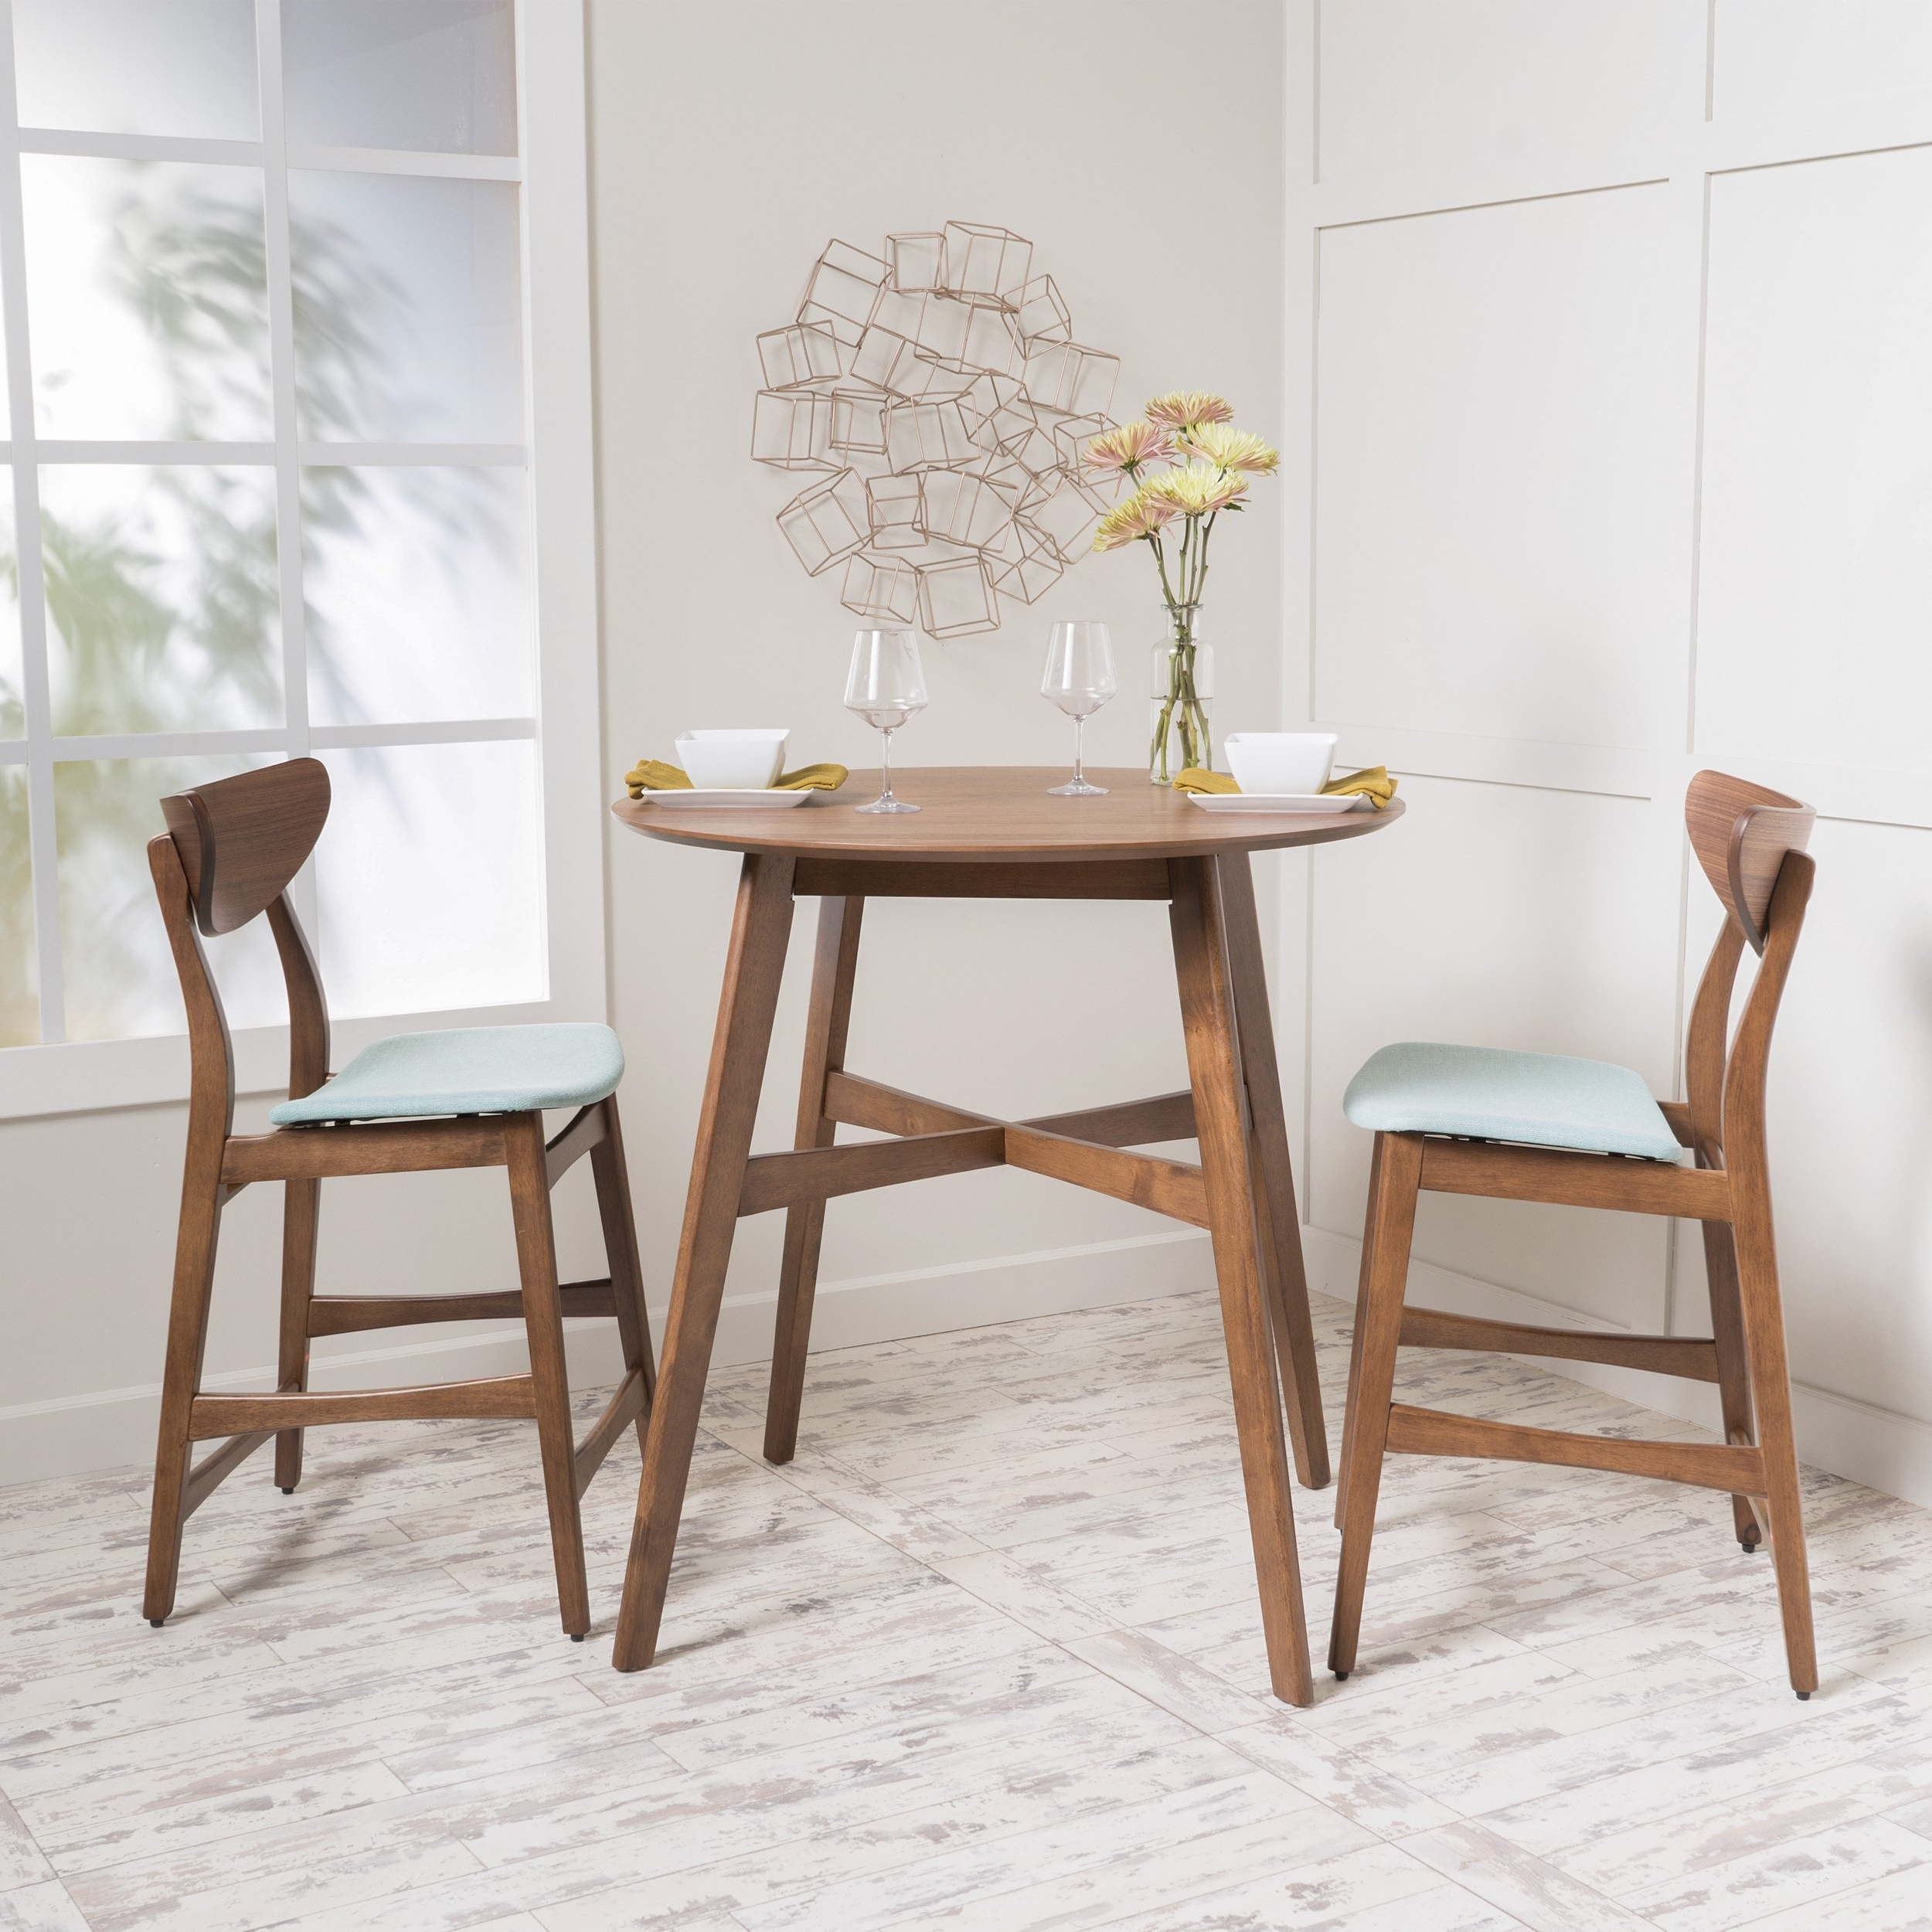 Gavin Dining Tables Pertaining To Most Recent Shop Gavin 3 Piece Wood Counter Height Round Dining Set (Gallery 9 of 25)